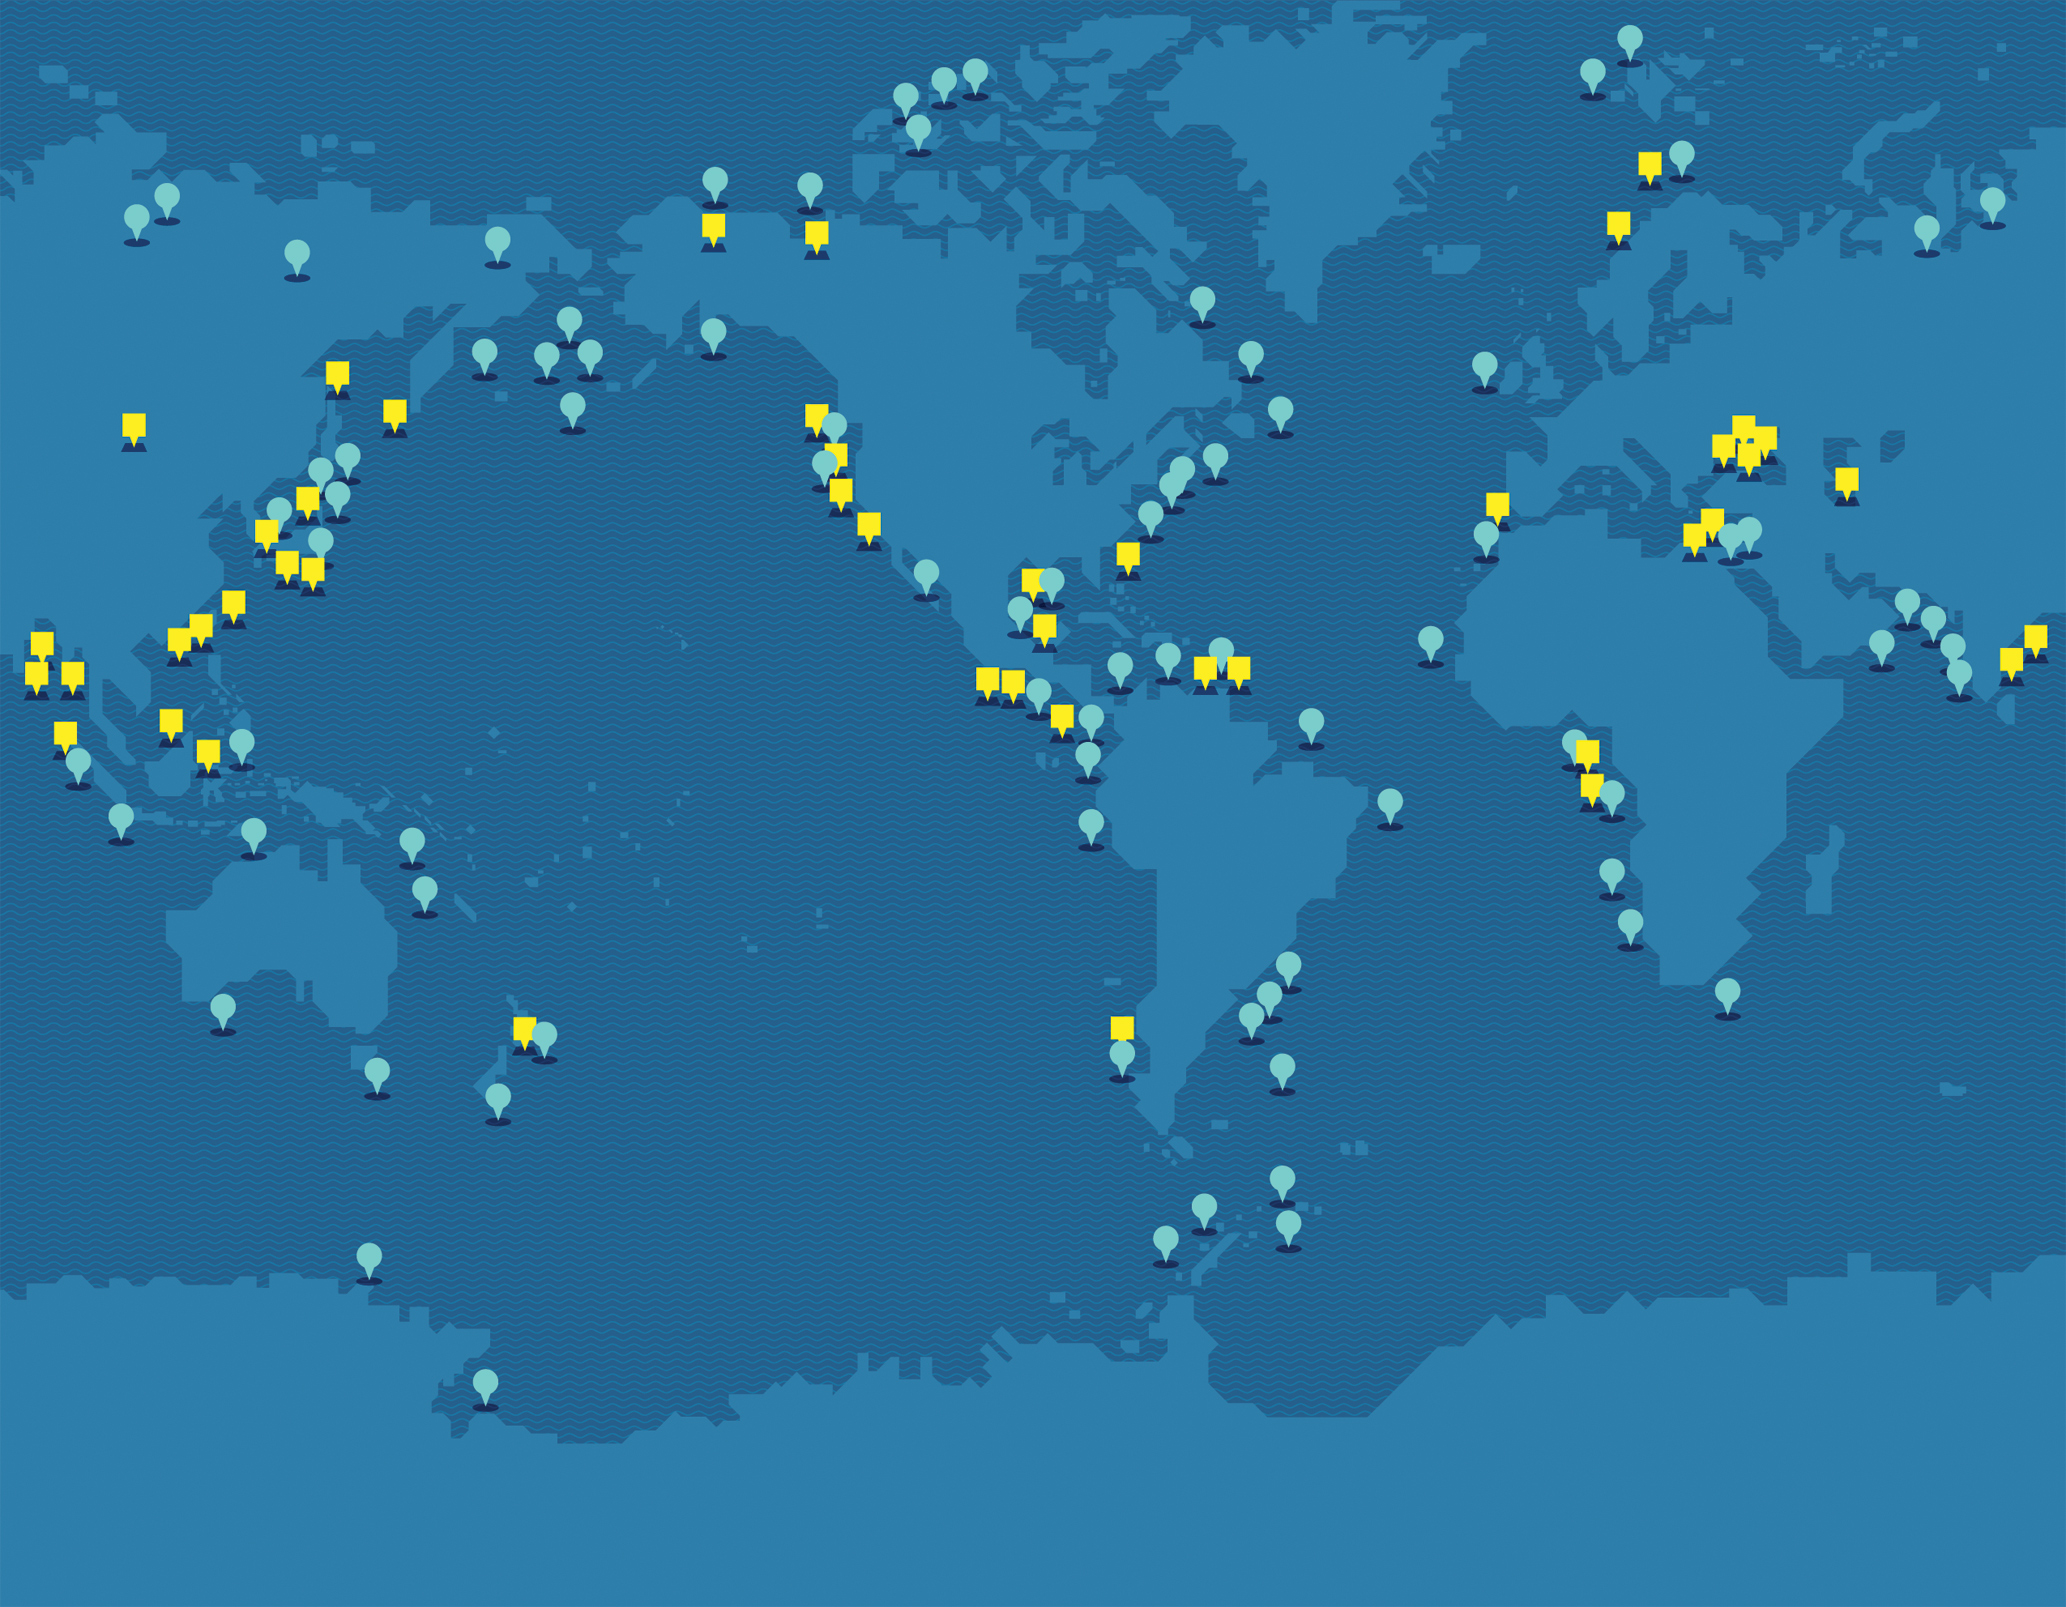 Stored mostly in broad, shallow layers beneath the seafloor, methane hydrate is, by some estimates, twice as abundant as all other fossil  fuels combined. The yellow squares show where methane hydrate has already been recovered; the blue dots, where it is thought to exist. (Map by Alice Cho)